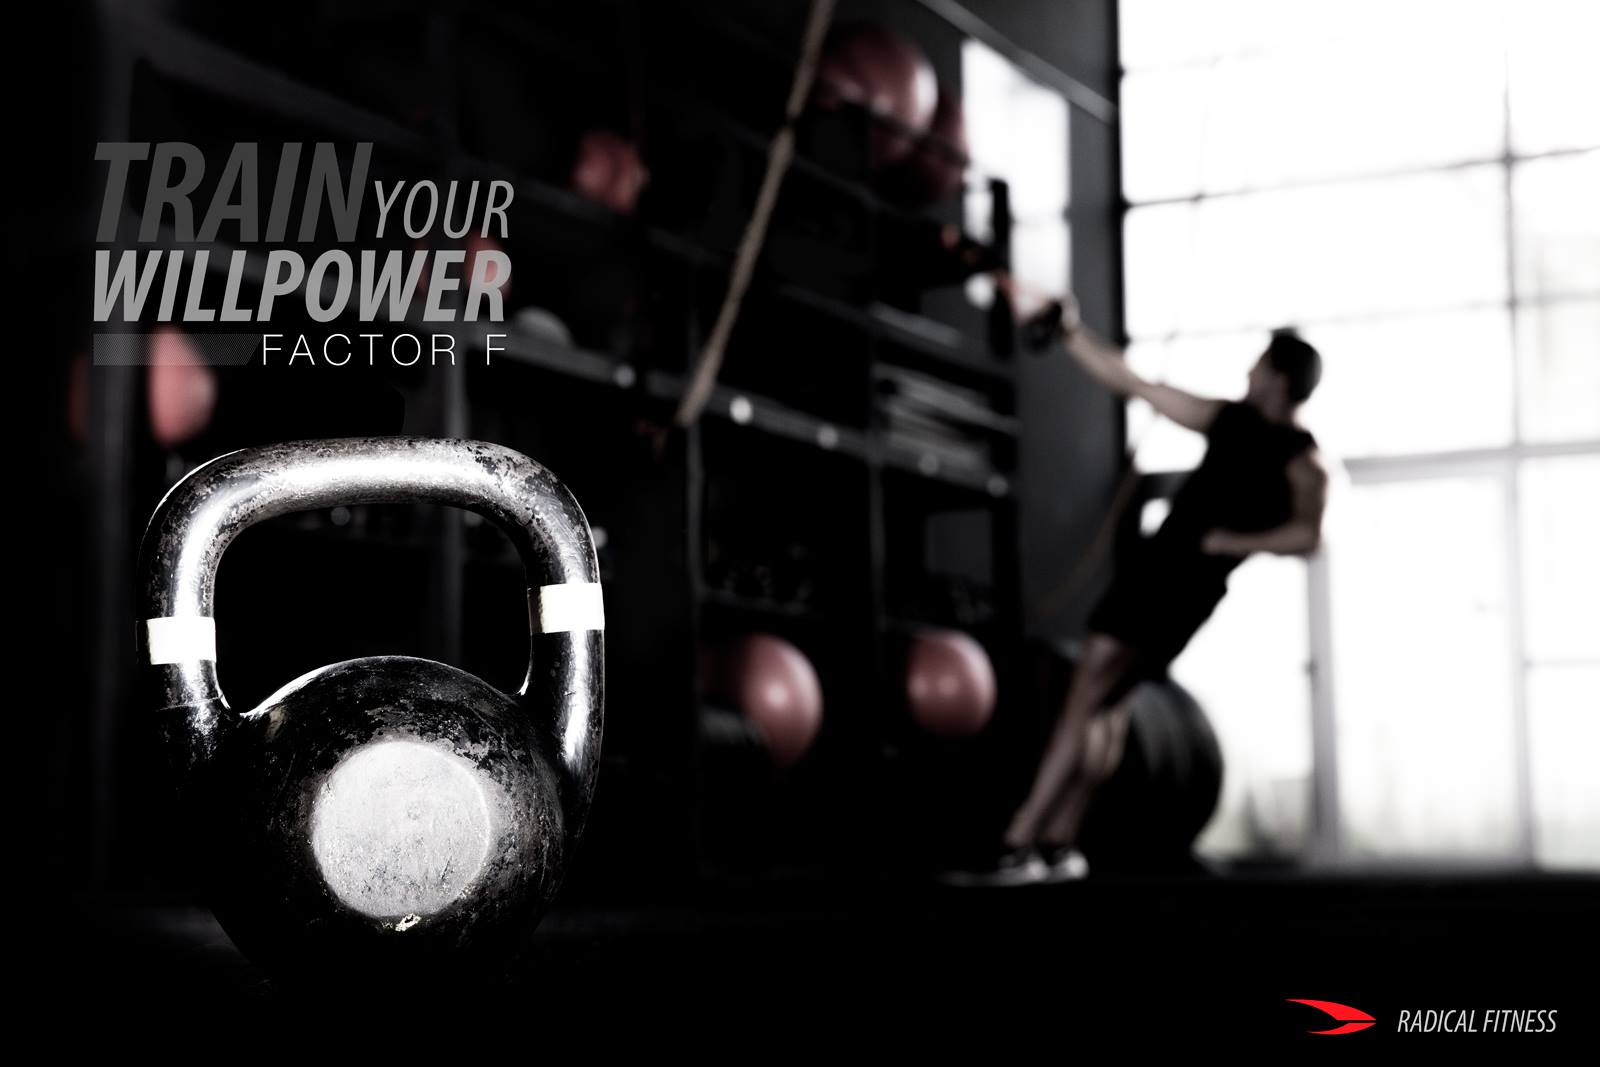 Radical Fitness - FACTOR F poster